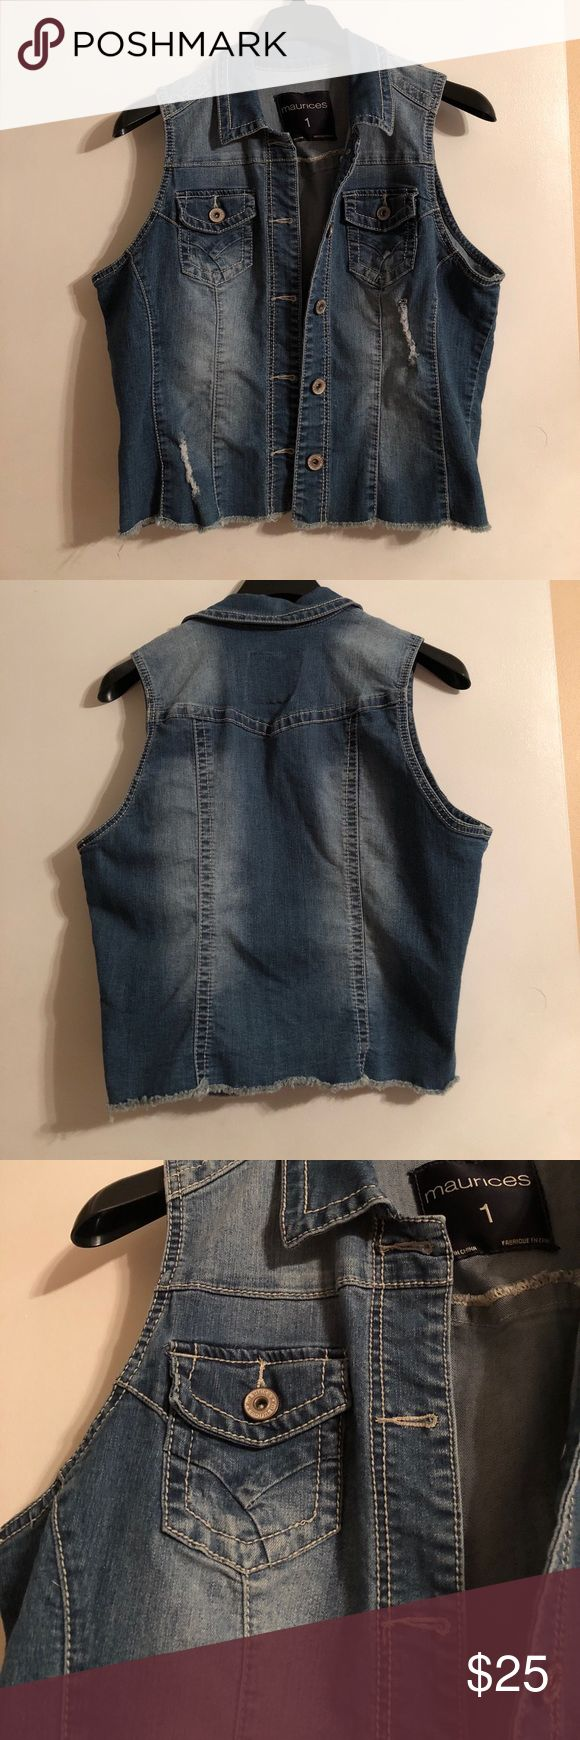 NWOT Maurices denim vest NWOT Maurices denim vest for sale! SZ: 1 (XXL) brand new, never worn! Medium wash with distressing throughout and fringe style bottom. 2 pockets on either side of chest area and 5 button closure. Lying flat: armpit to armpit approx. 21in and armpit to bottom hem 11.5in. Perfect for your fall wardrobe 🍁🍂 Maurices Jackets & Coats Vests